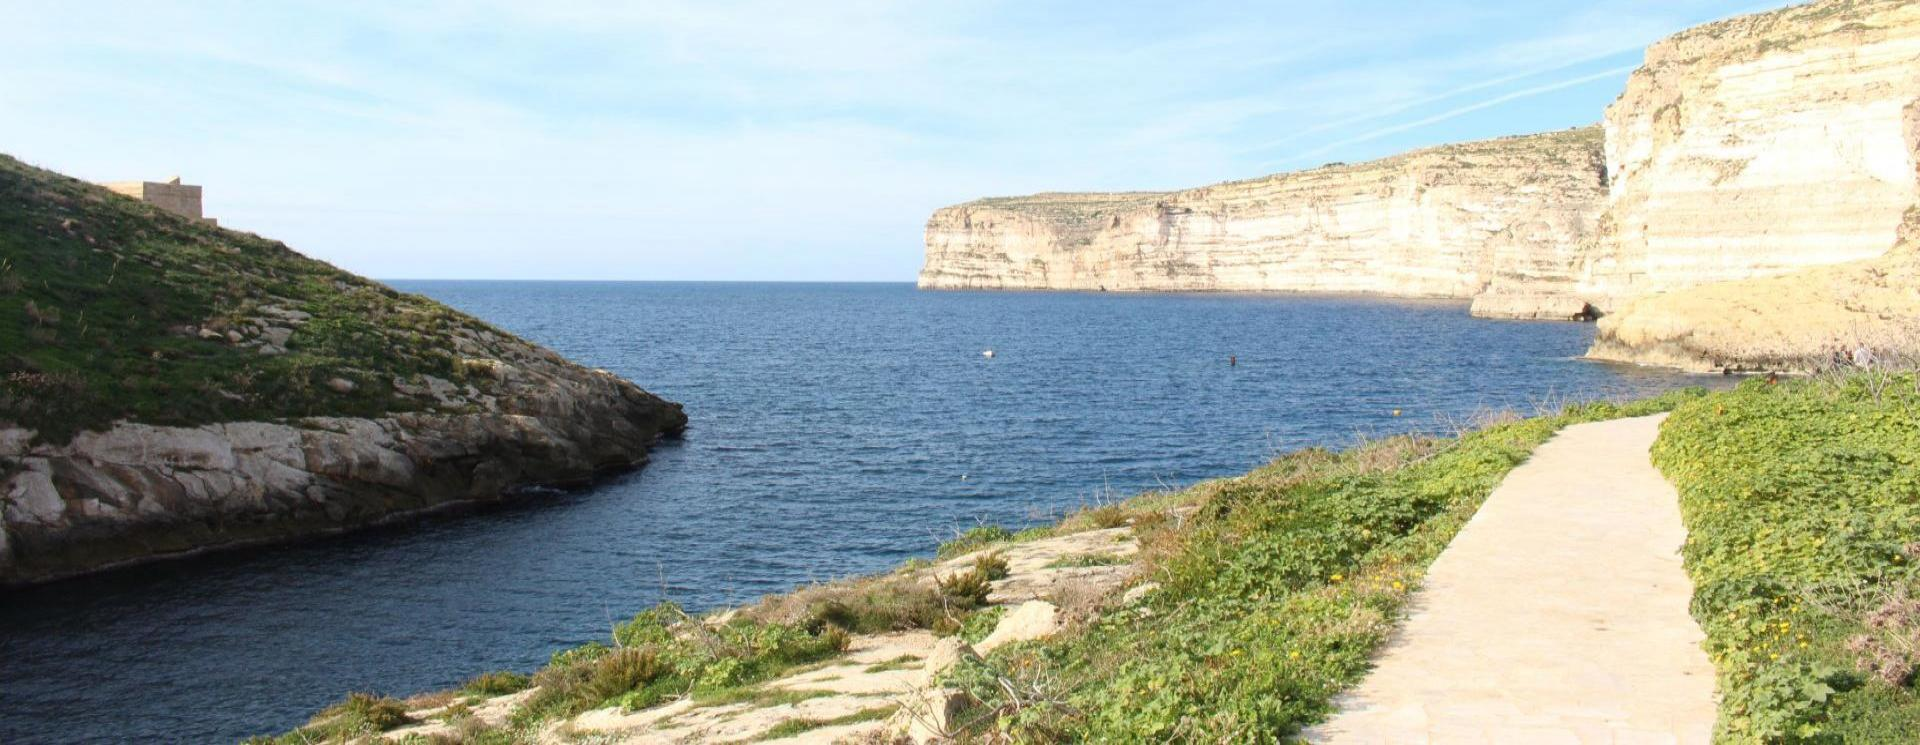 First time in Gozo